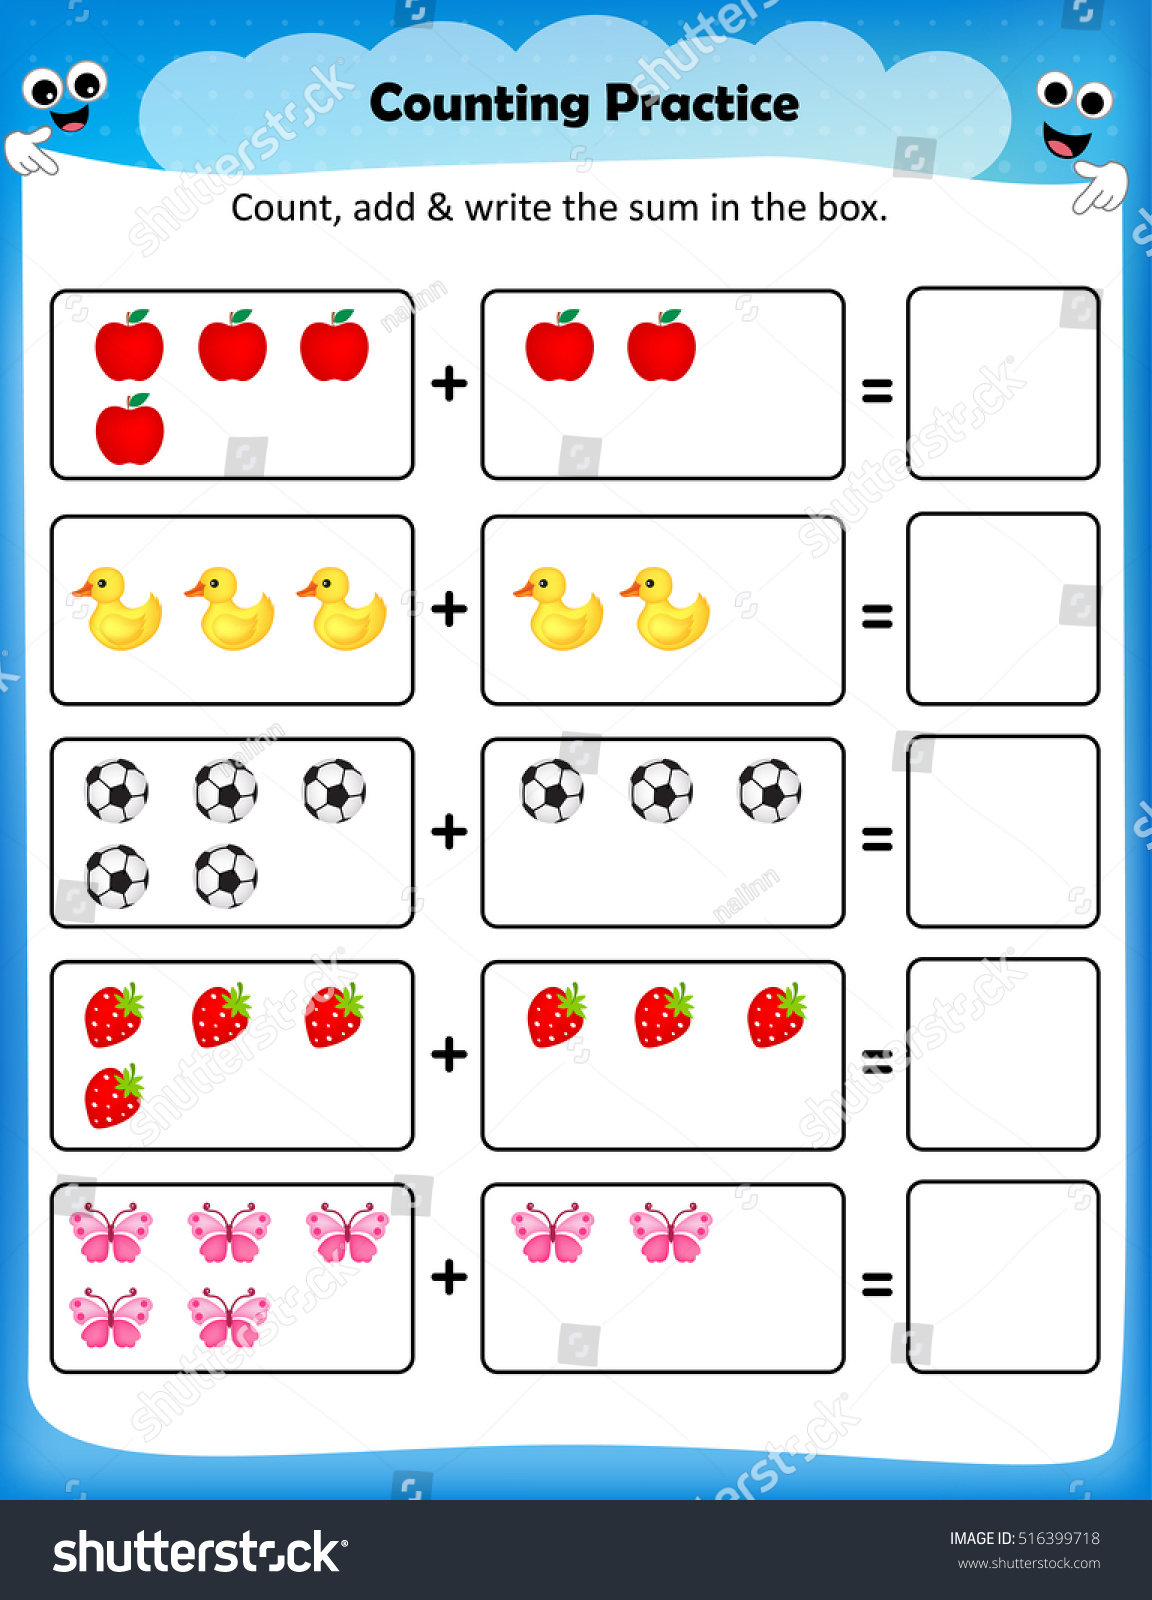 Counting Worksheet For Preschool Fun